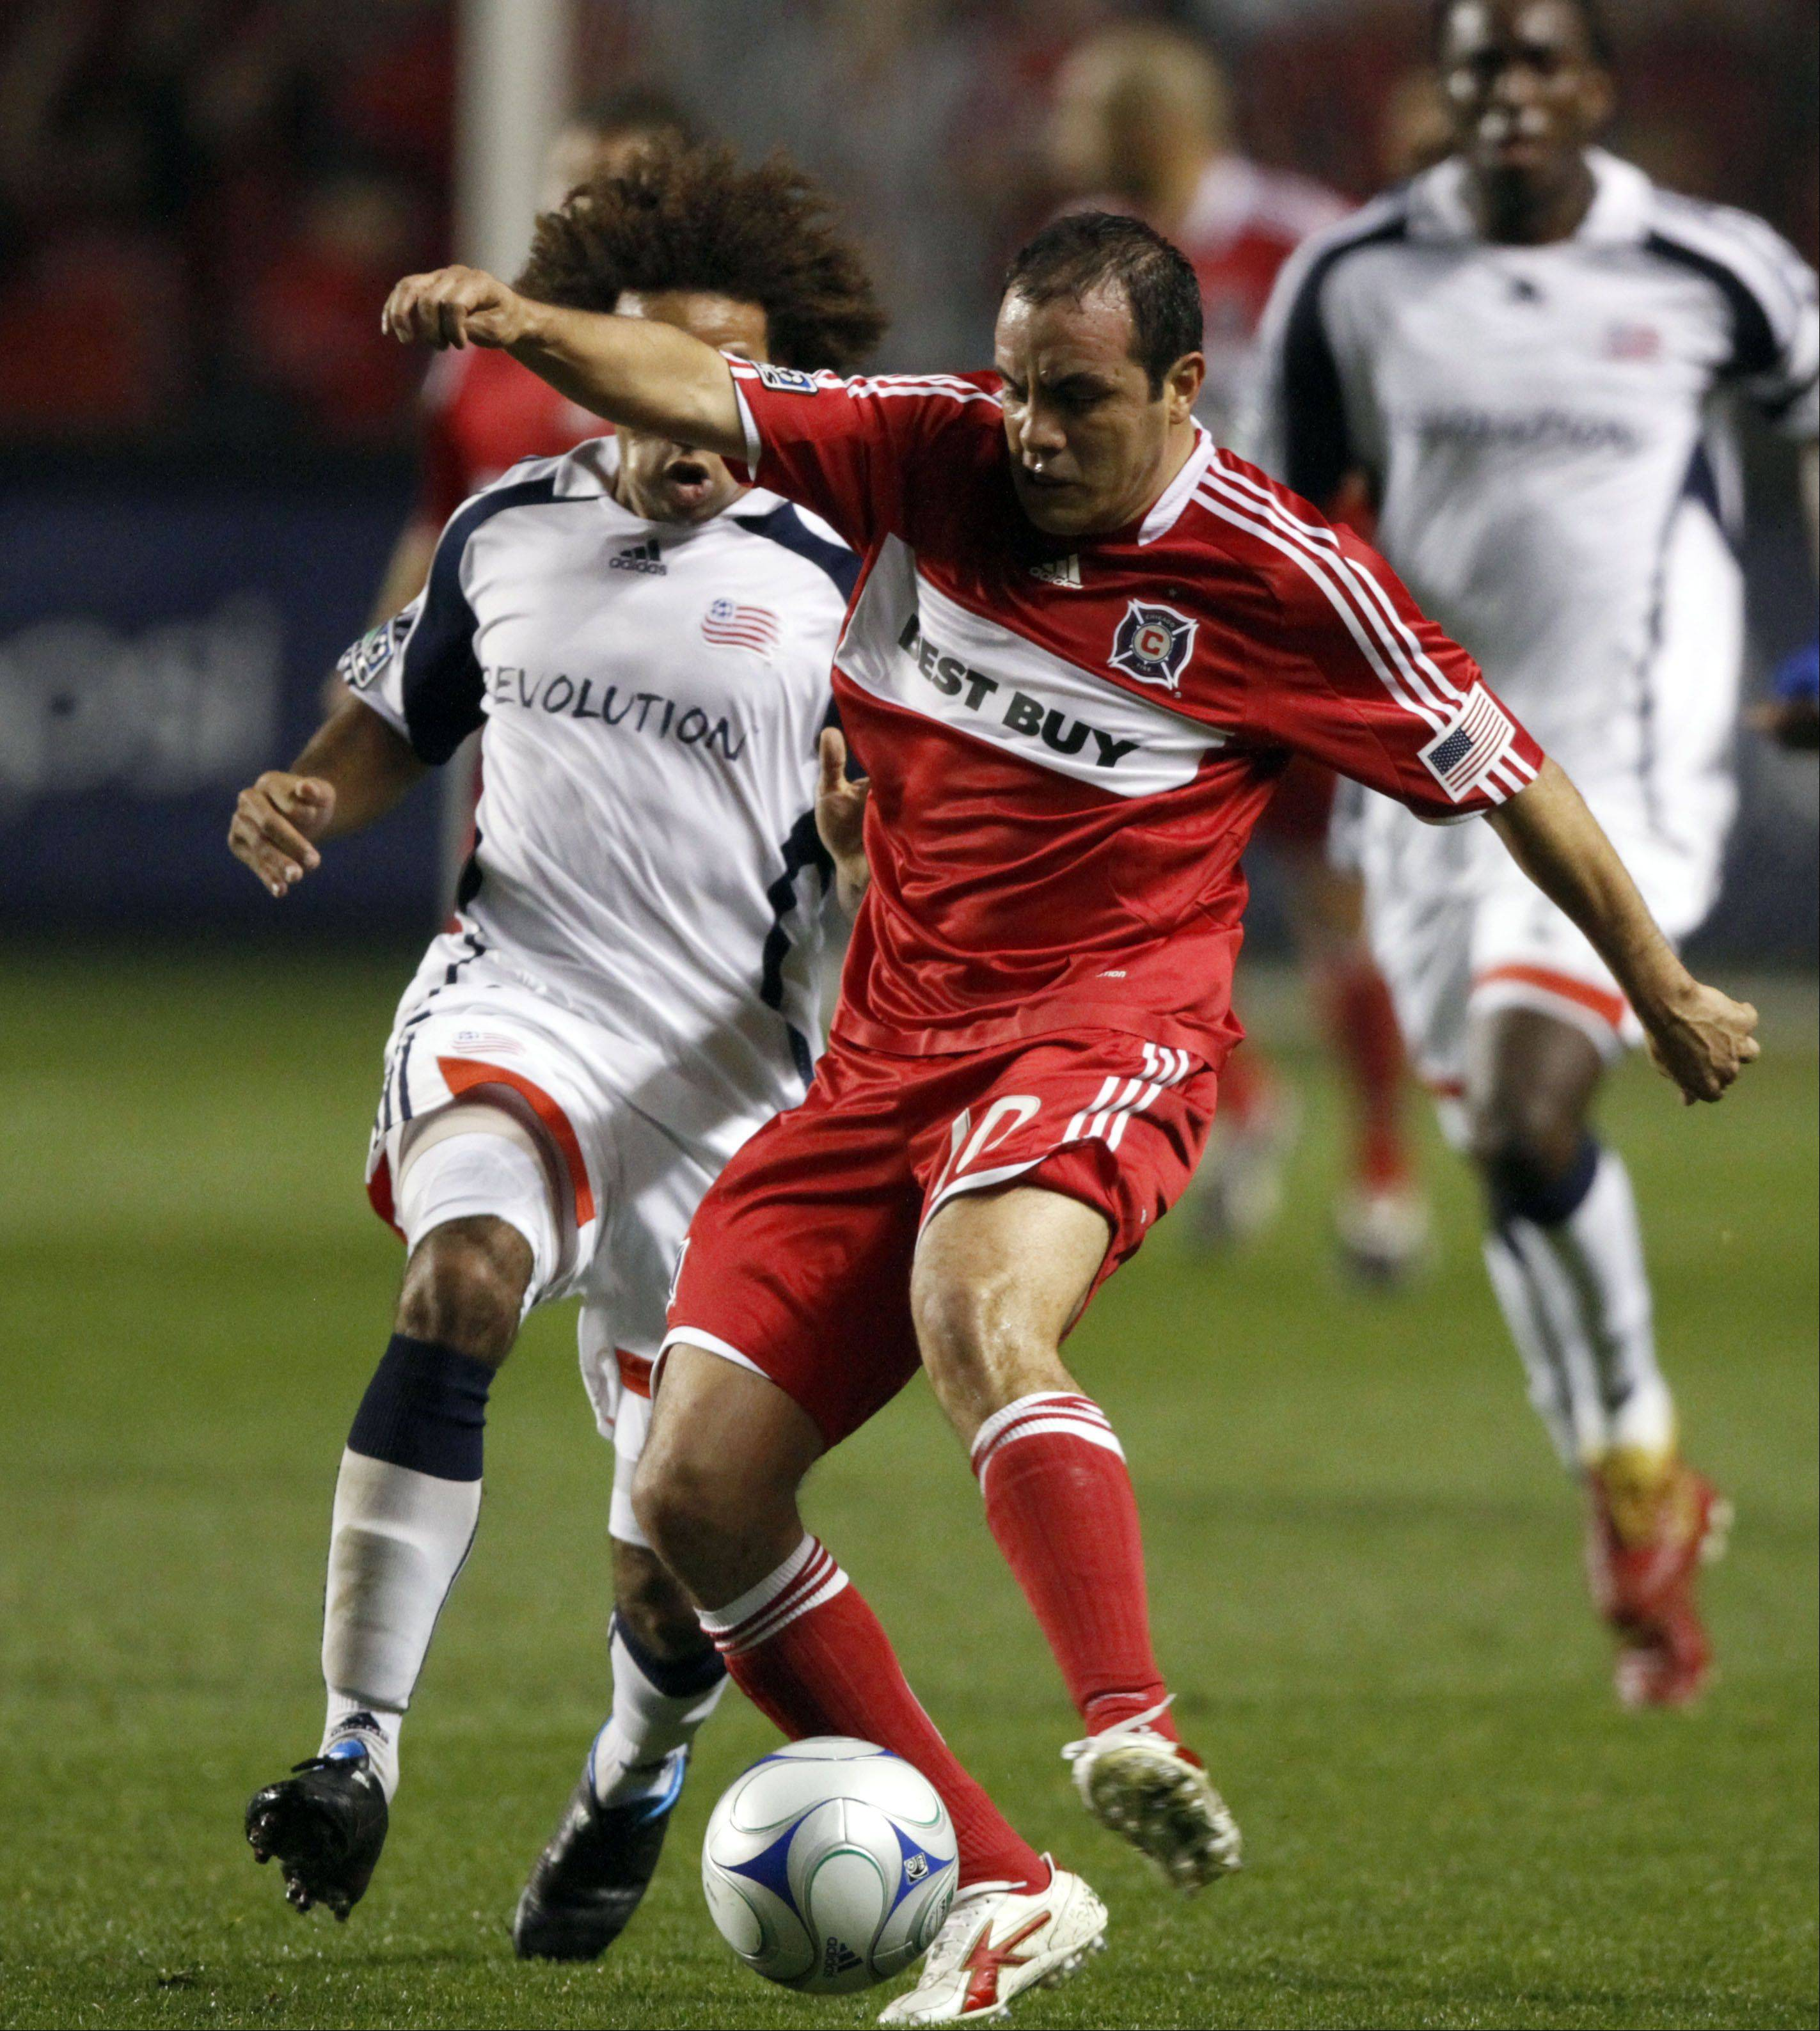 New England Revolution's Kevin Alston, left, defends as Chicago Fire's Cuauhtemoc Blanco moves the ball upfield during the first half of an MLS soccer match Saturday, Nov. 7, 2009, in Bridgeview, Ill. (AP Photo/Jim Prisching)